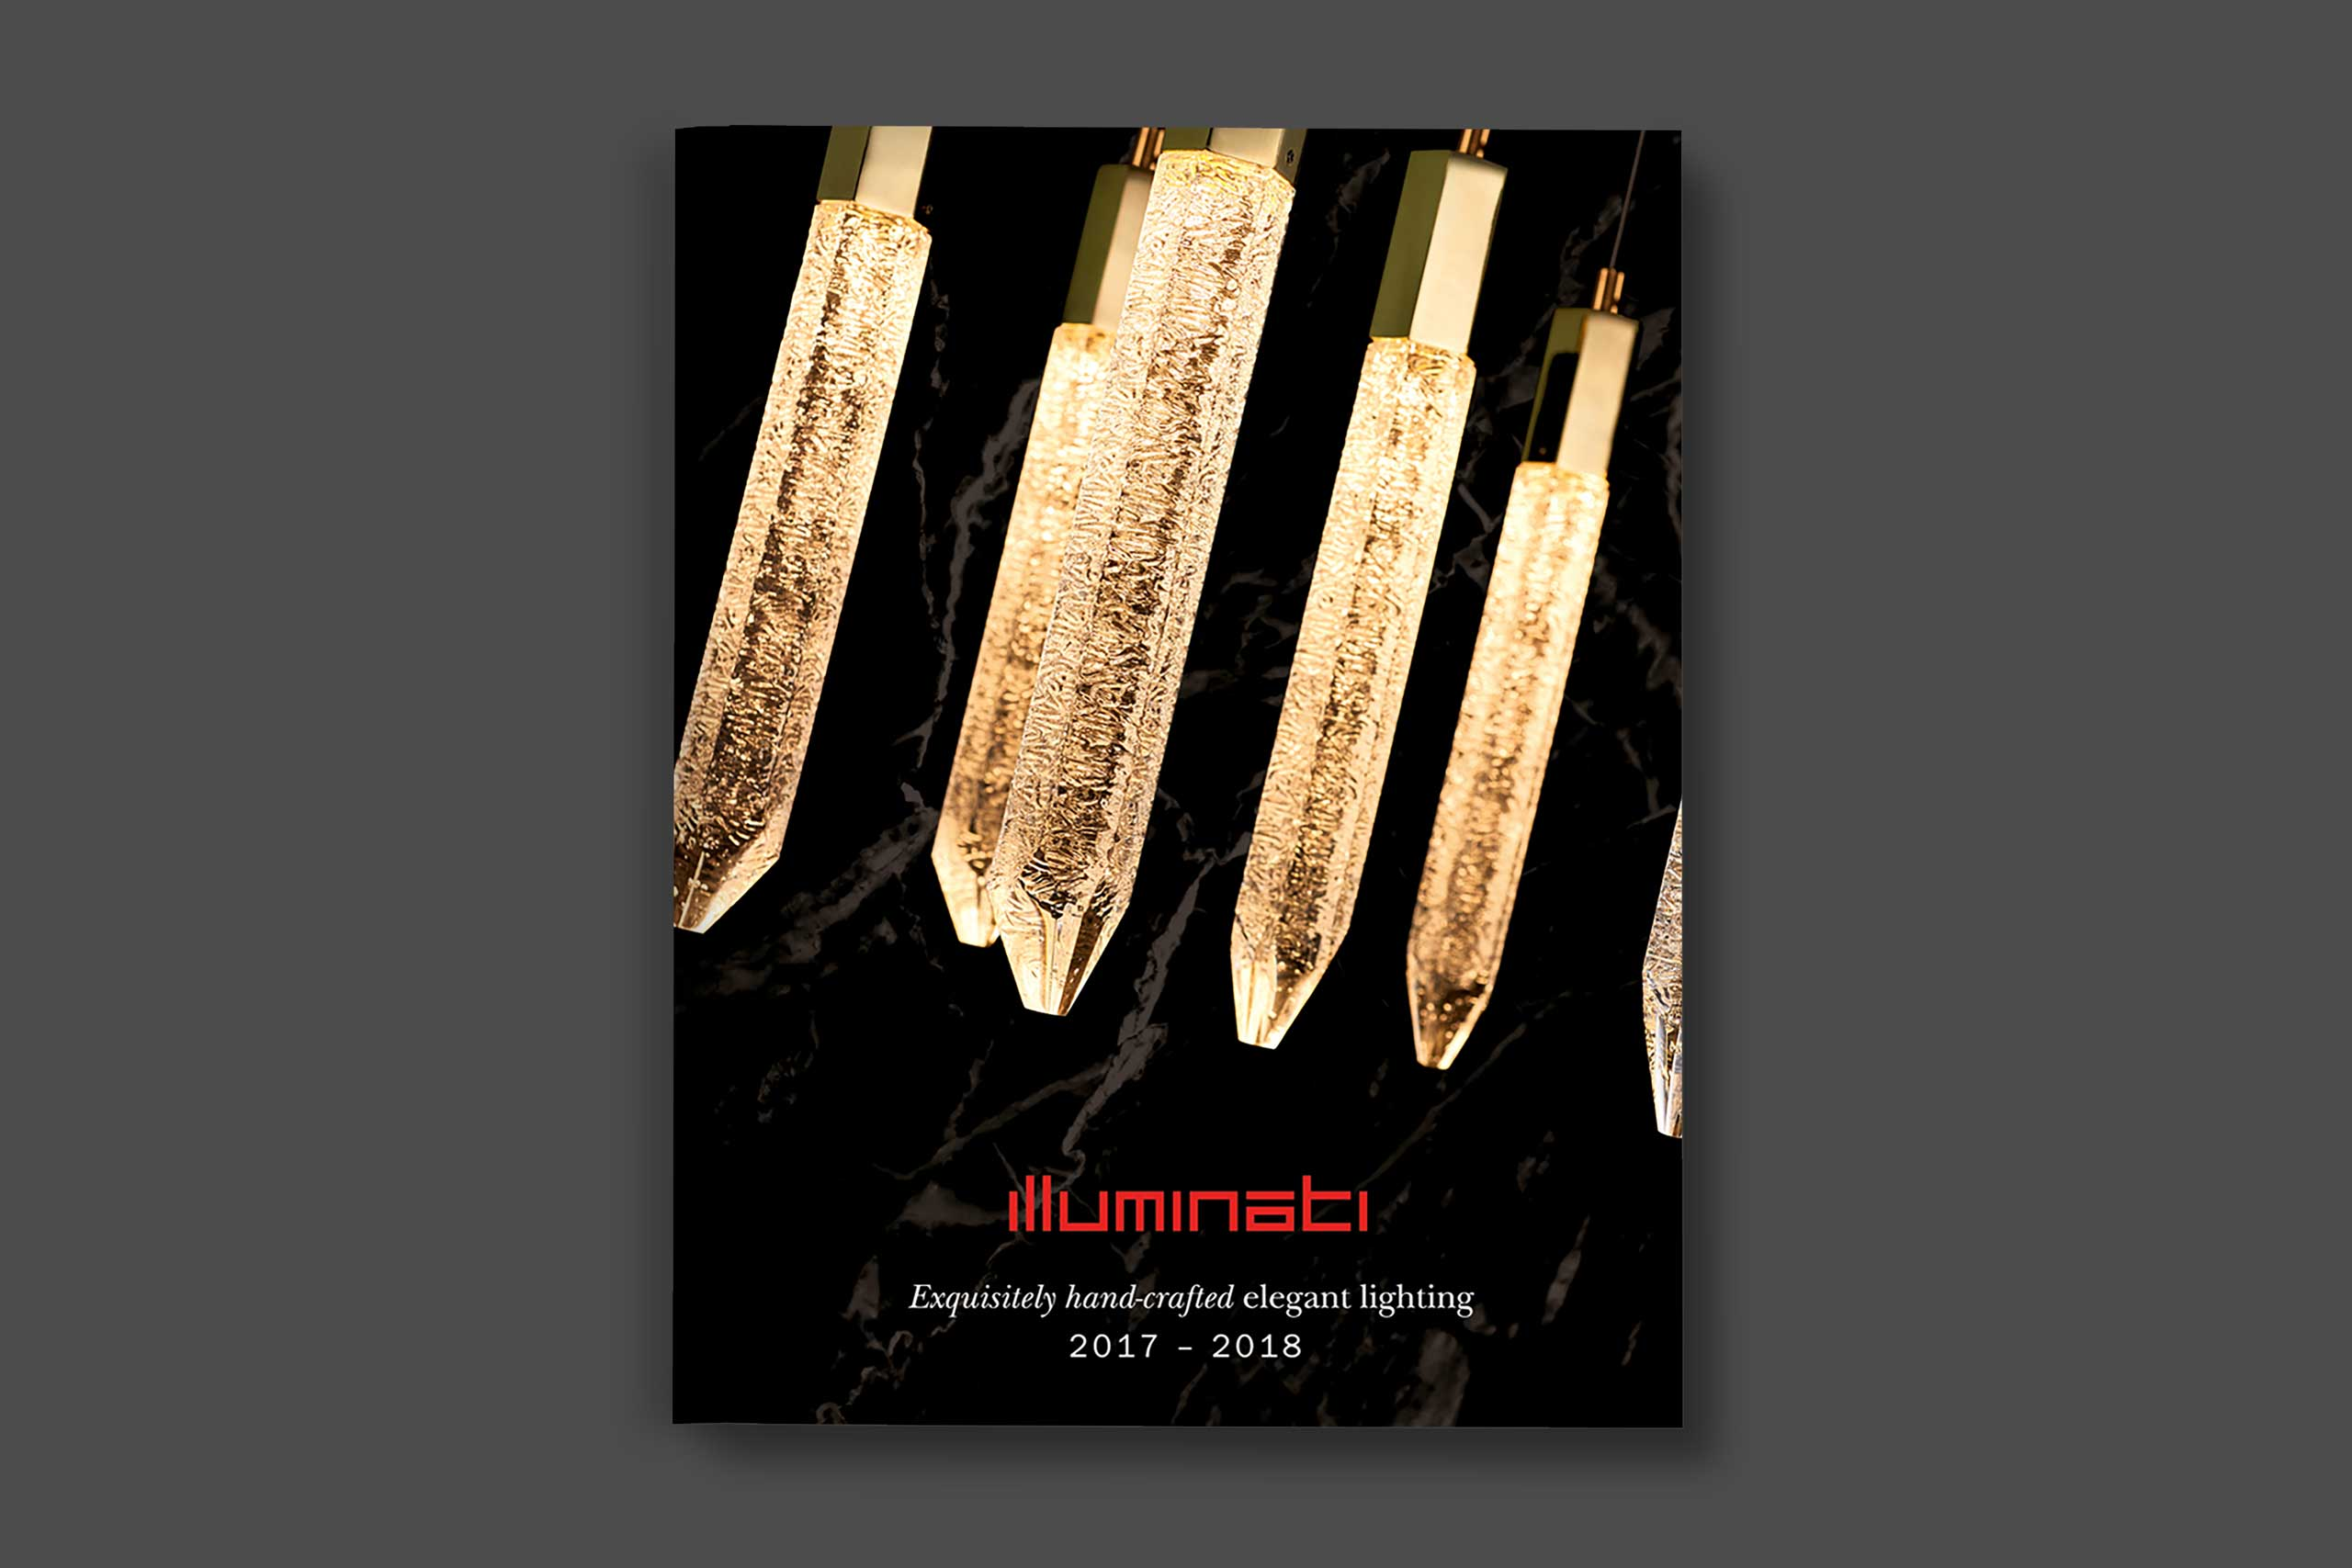 Illuminati Lighting product brochure cover with brand marketing expertise